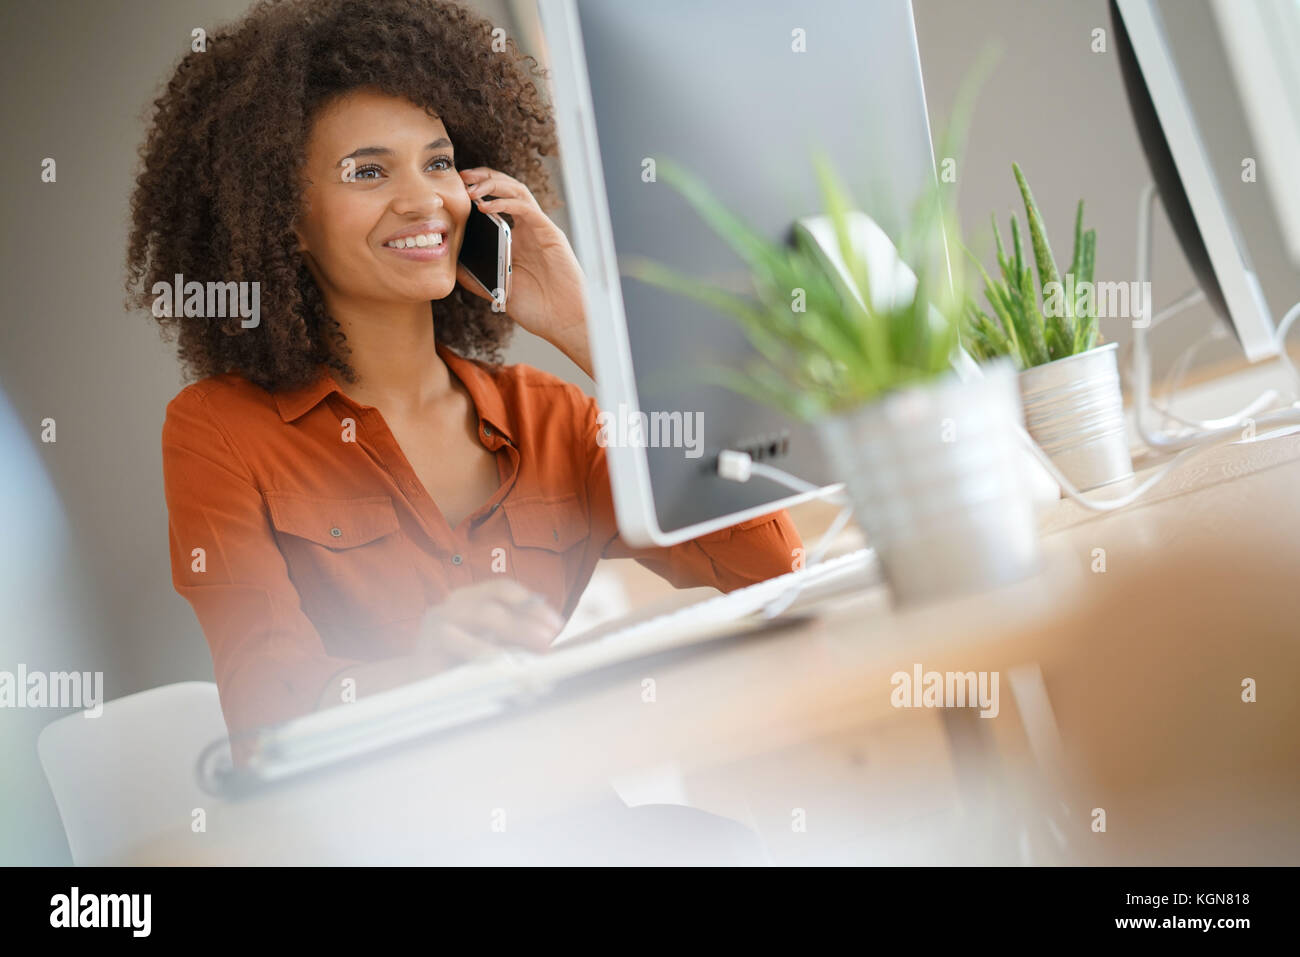 Cheerful businesswoman talking on phone in office Photo Stock